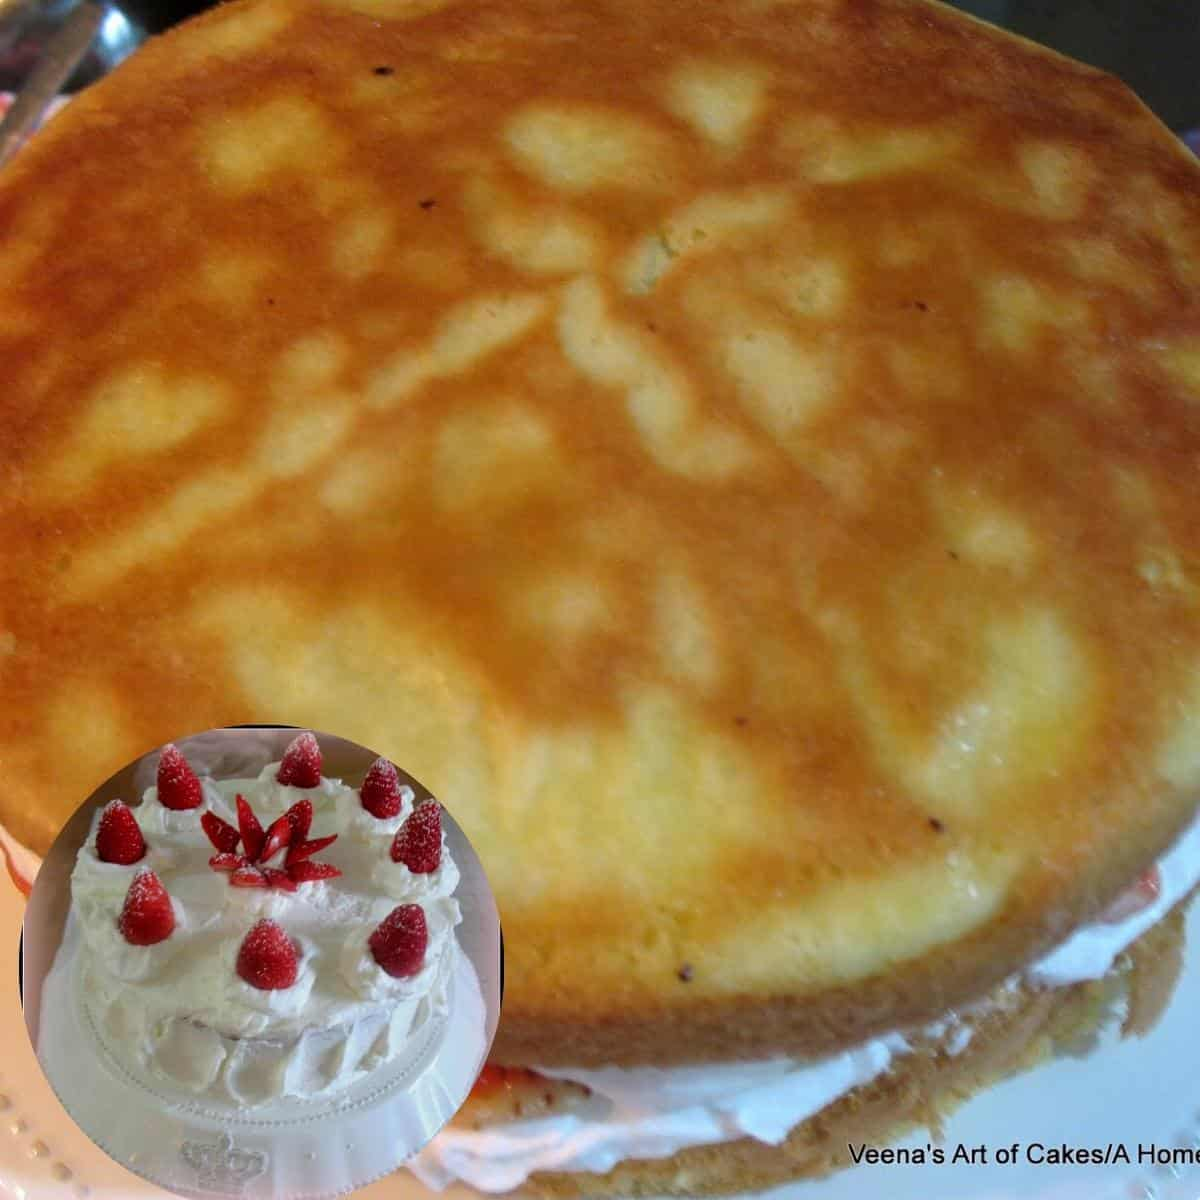 A cake frosted with whipped cream.